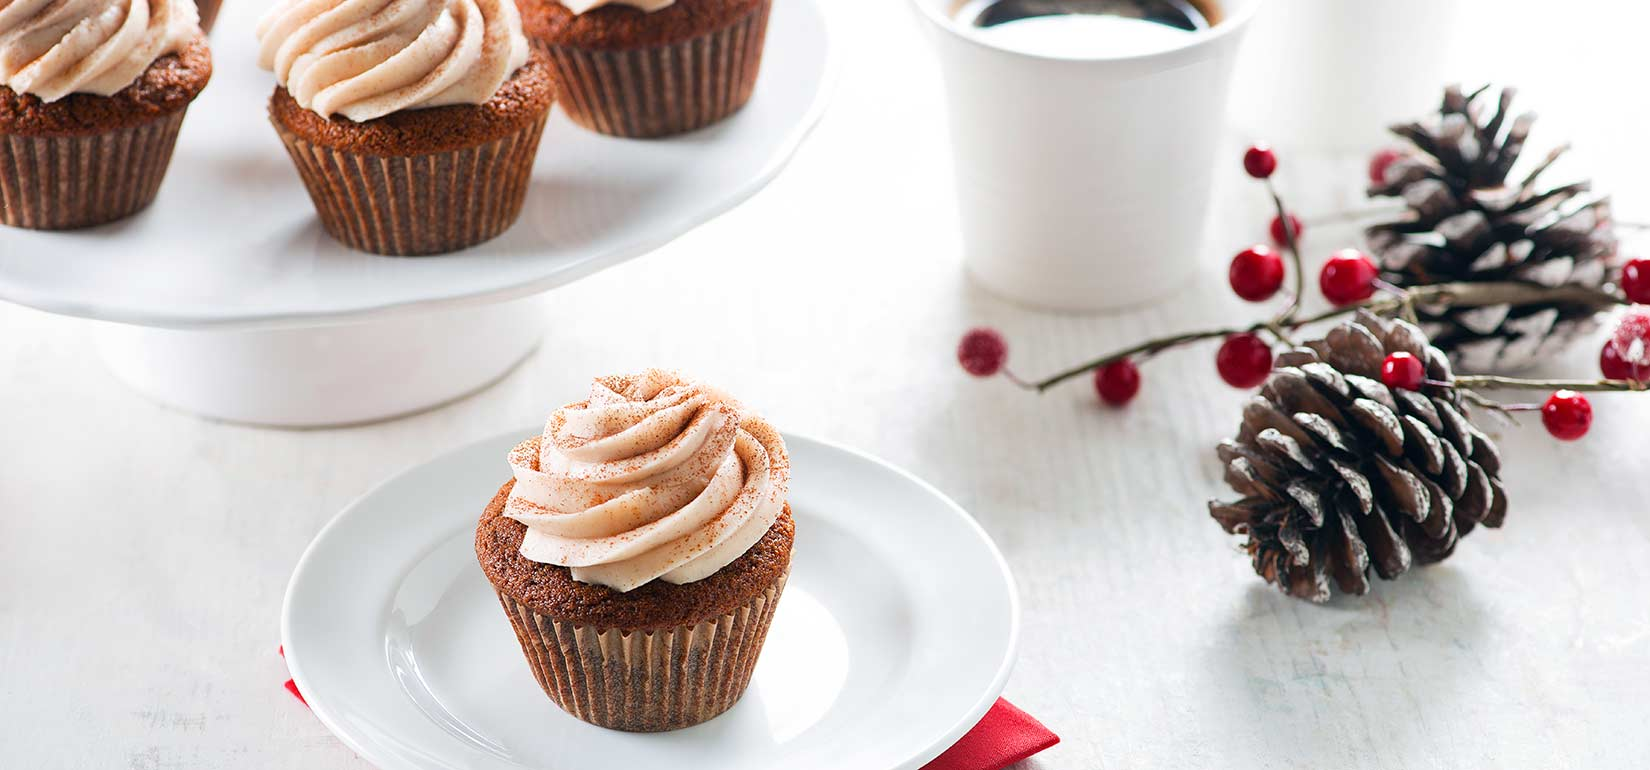 Simply Organic Holiday Organic Gingerbread Cupcakes with Vanilla Cream Cheese Frosting Recipe